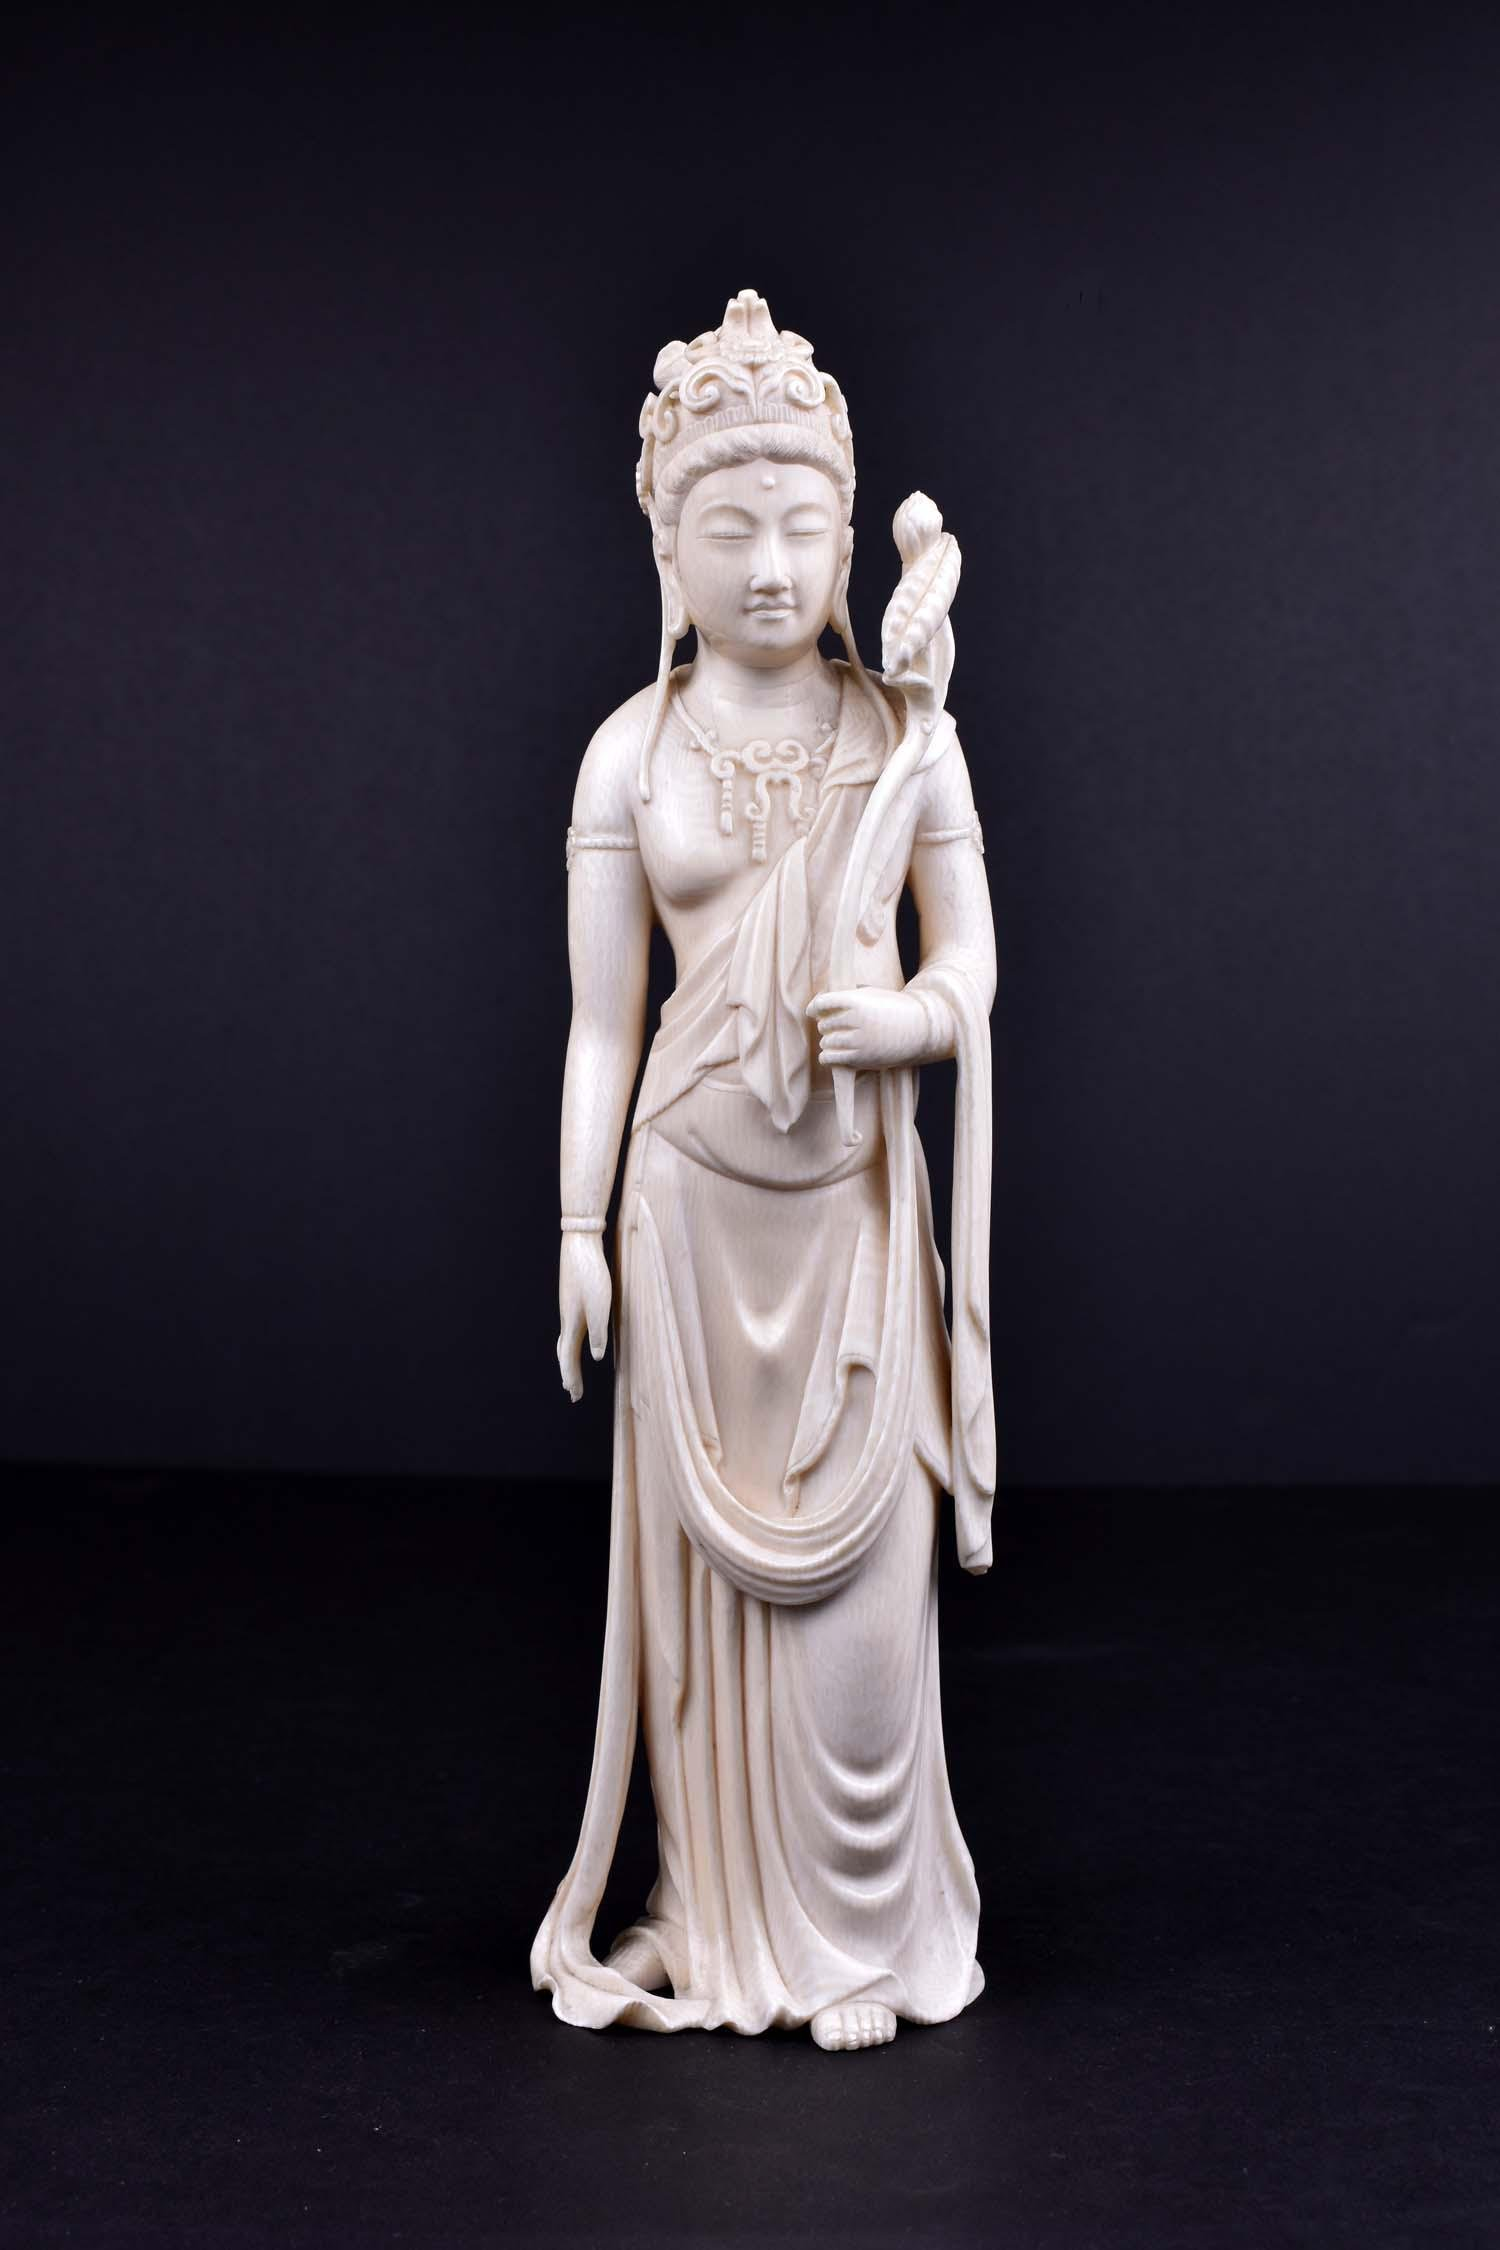 JAPANESE OKIMONO OF KANNON, THE GODDESS OF MERCY